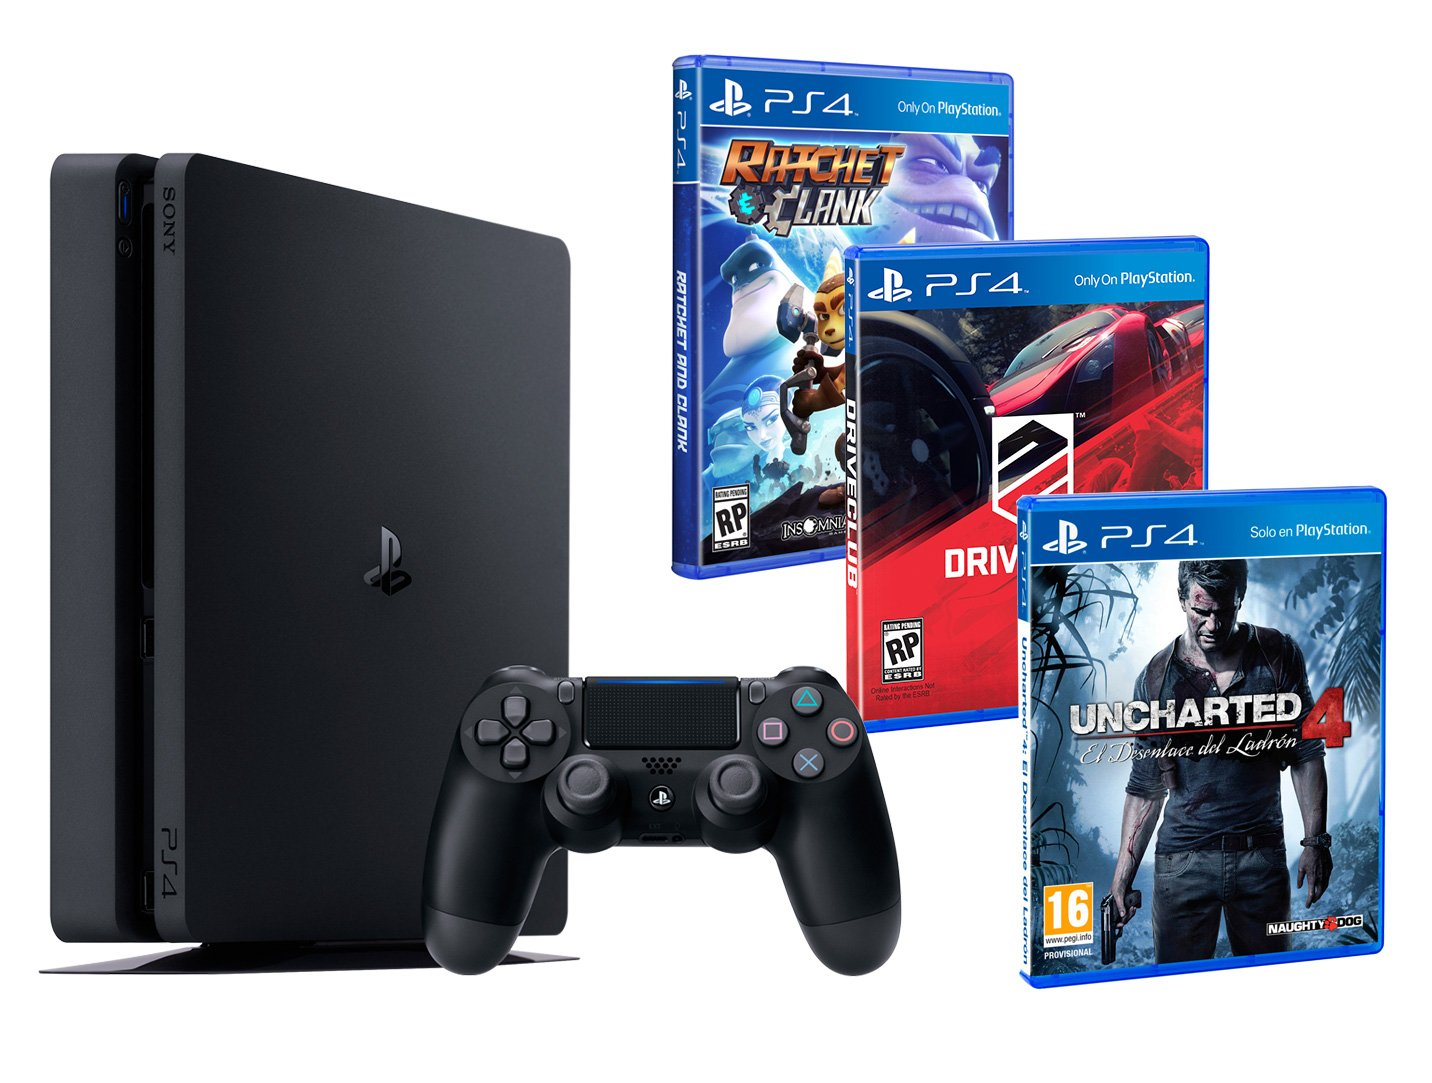 PS4 Slim 4 1Tb + 3 Giochi - Uncharted 4 + Ratchet & Clank + Driveclub